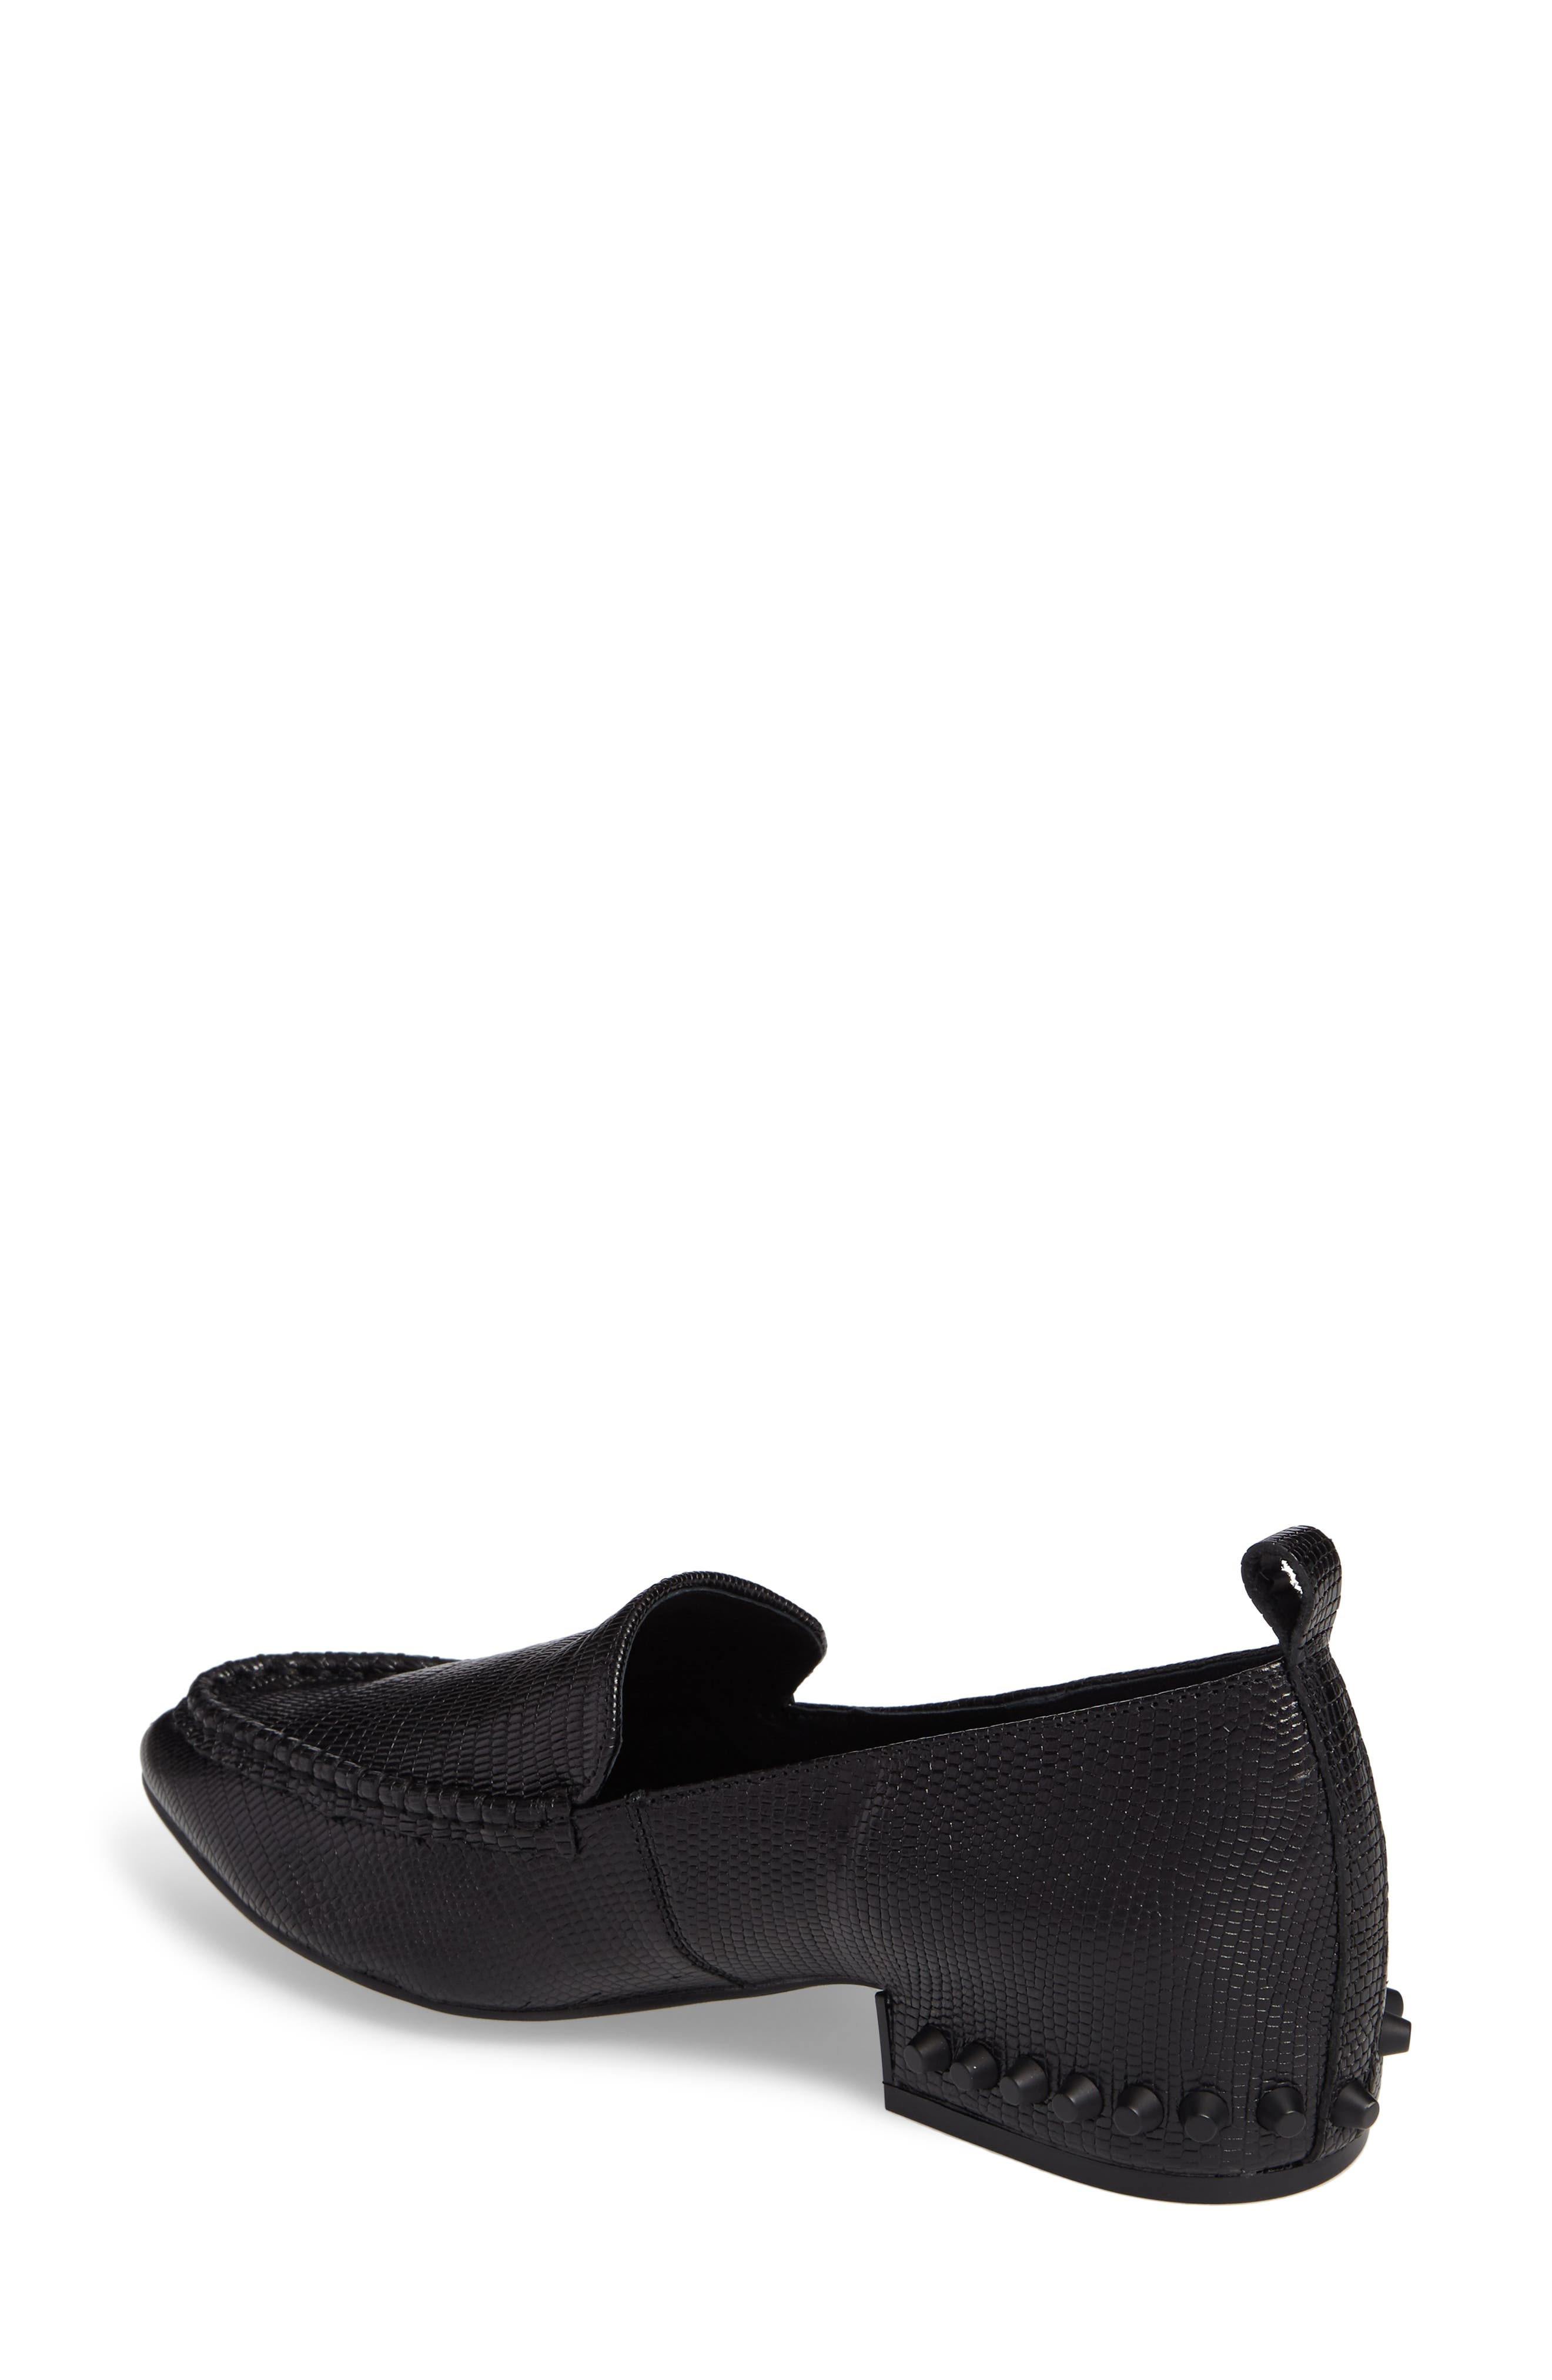 Barnett Studded Loafer,                             Alternate thumbnail 2, color,                             002